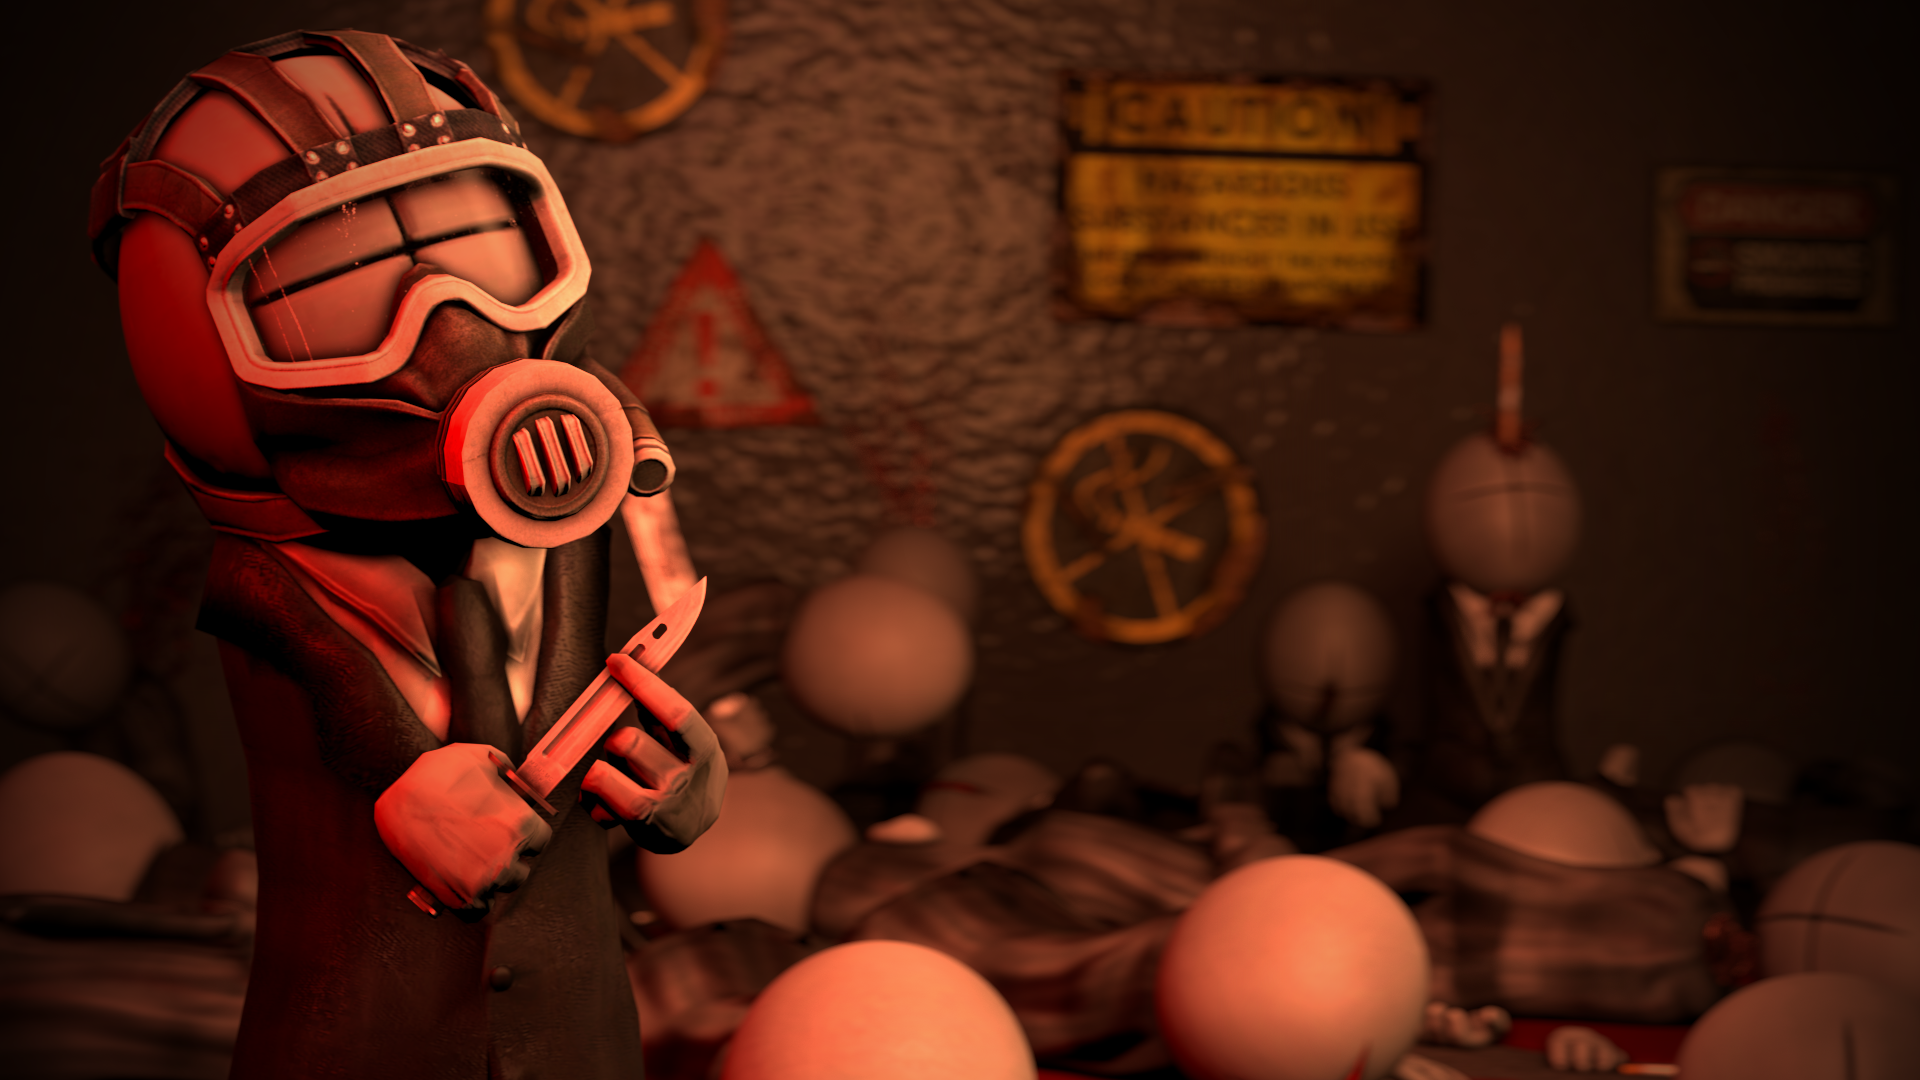 [SFM] Sharp Massacre